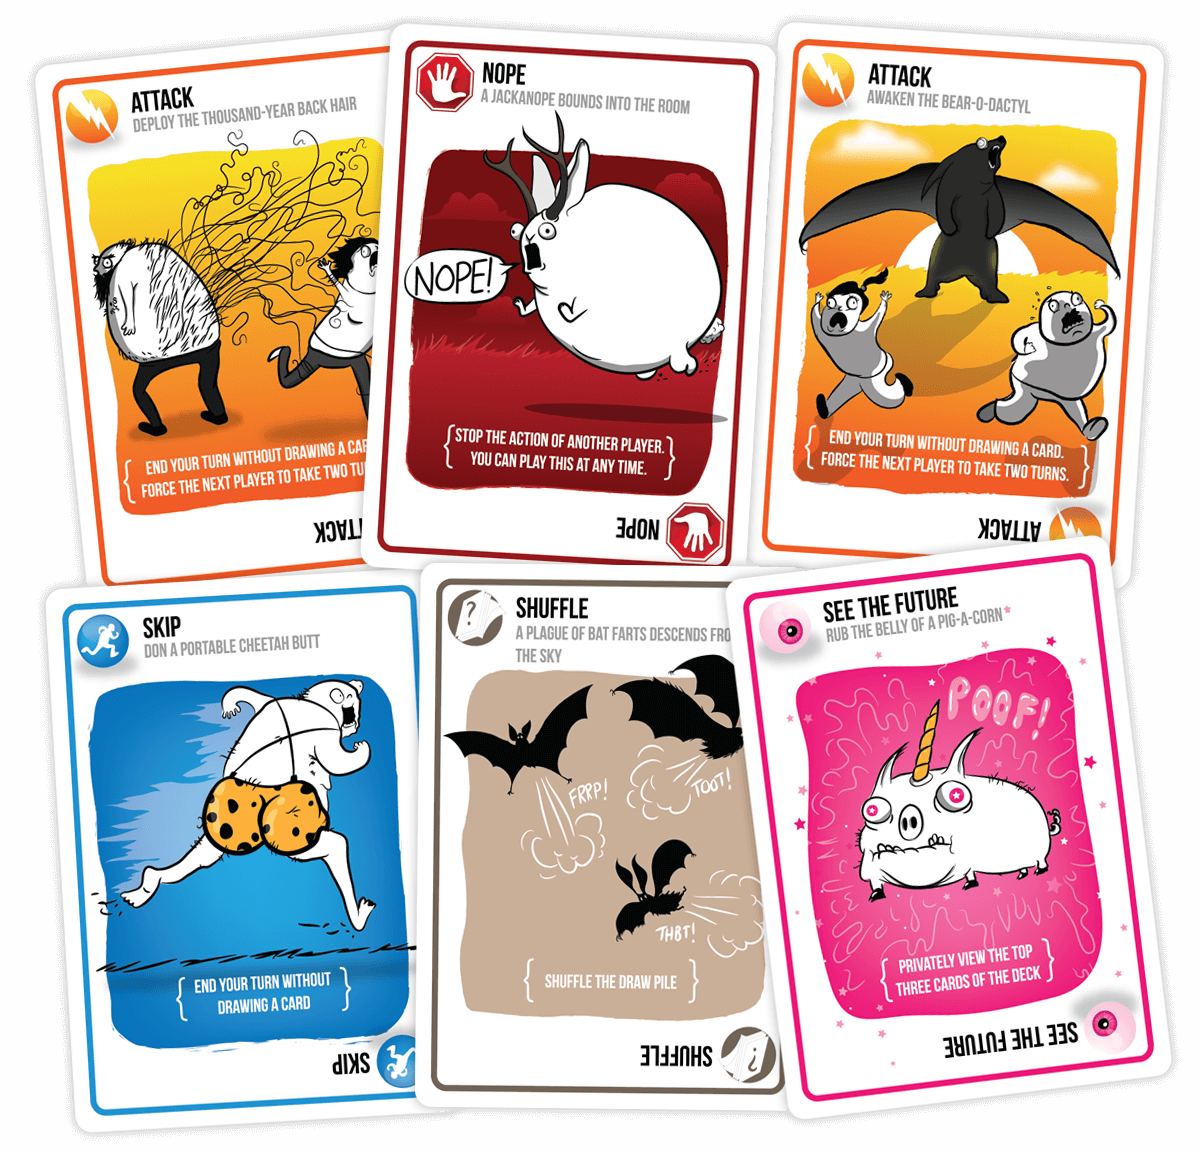 Exploding Kittens A Card Game For People Who Are Into Kittens And Explosions And Laser Beams A In 2020 Exploding Kittens Card Game Exploding Kittens Group Card Games